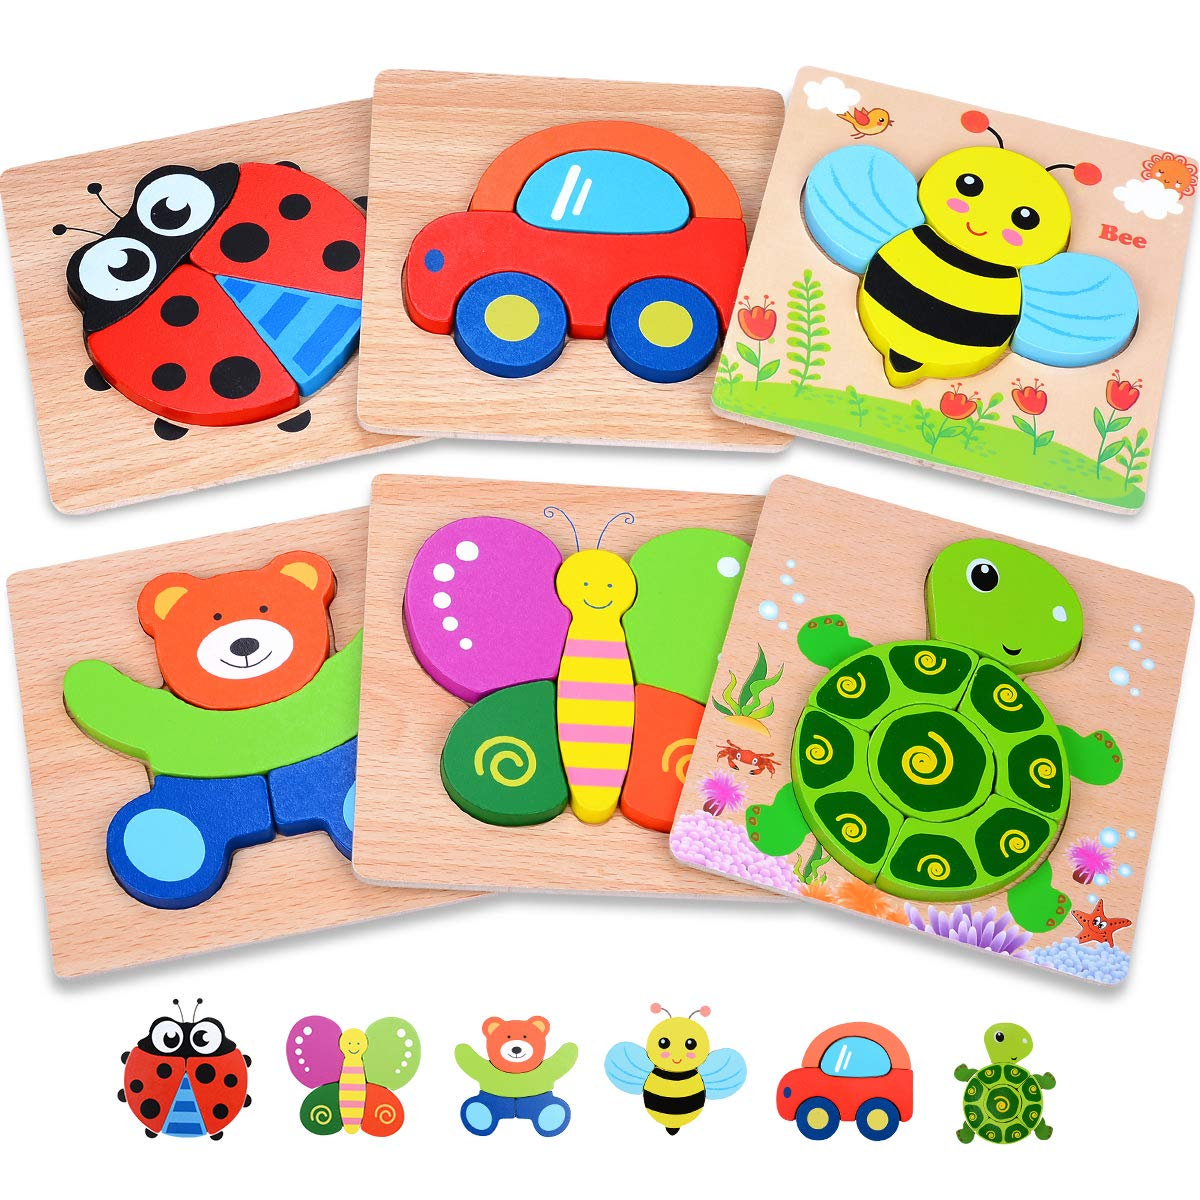 MAGIFIRE Wooden Toddler Puzzles Gifts Toys for 1 2 3 Year Old Boys Girls Baby Infant Kid Learning Educational 6 Animal Shape Jigsaw Eco Friendly Child Kid Montessori Stem Travel Toy